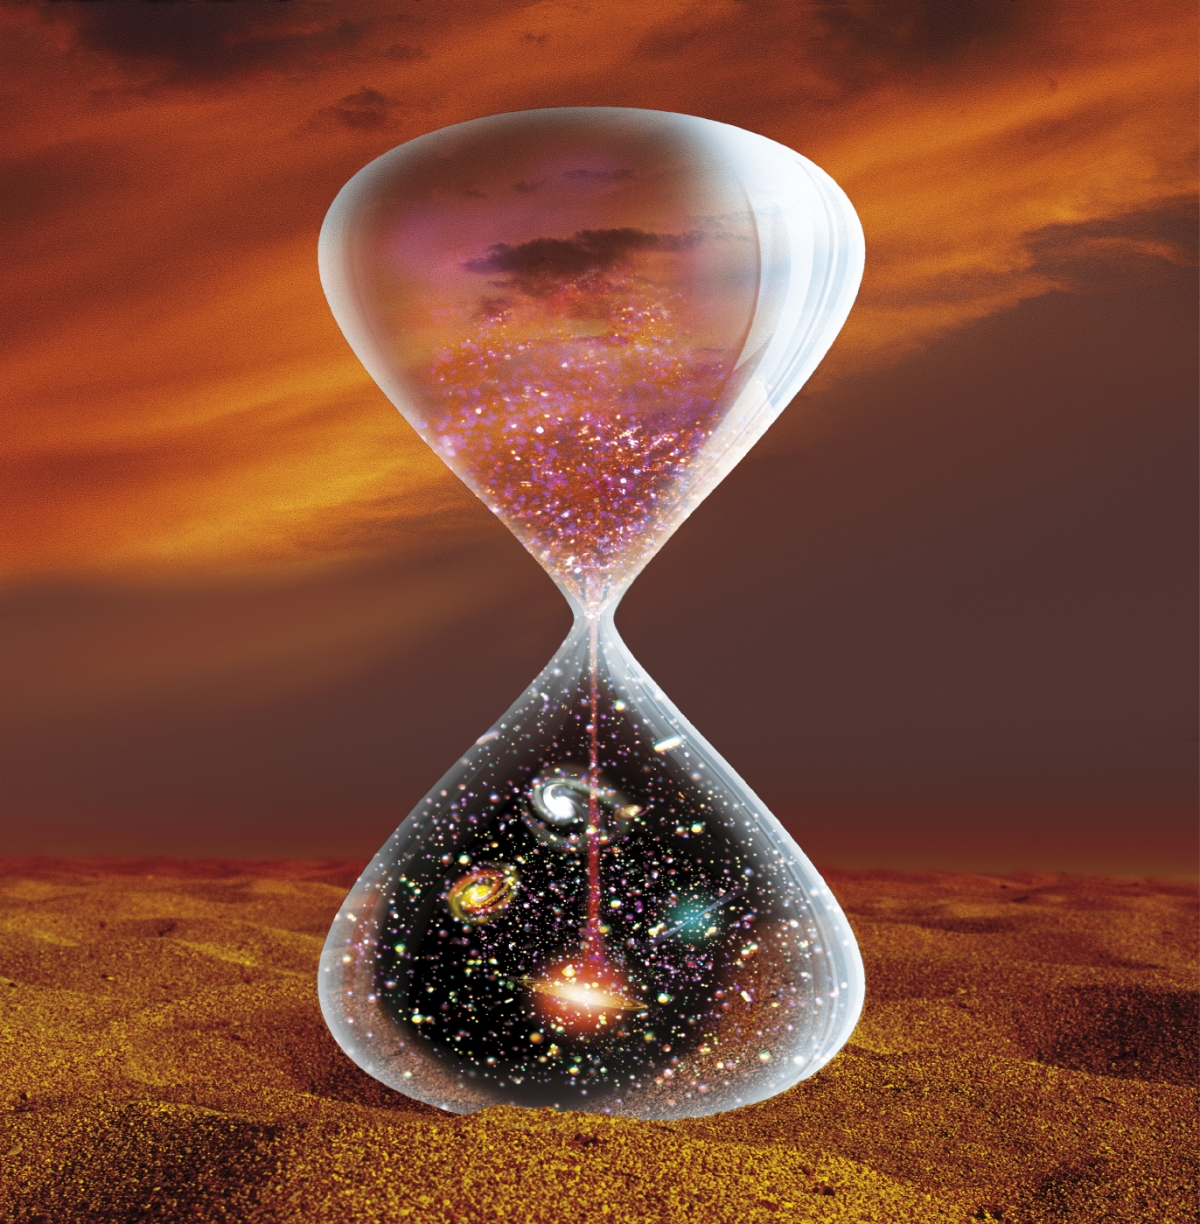 Time flies when you're a subatomic particle – new quantum mechanics turns spacetime on its head